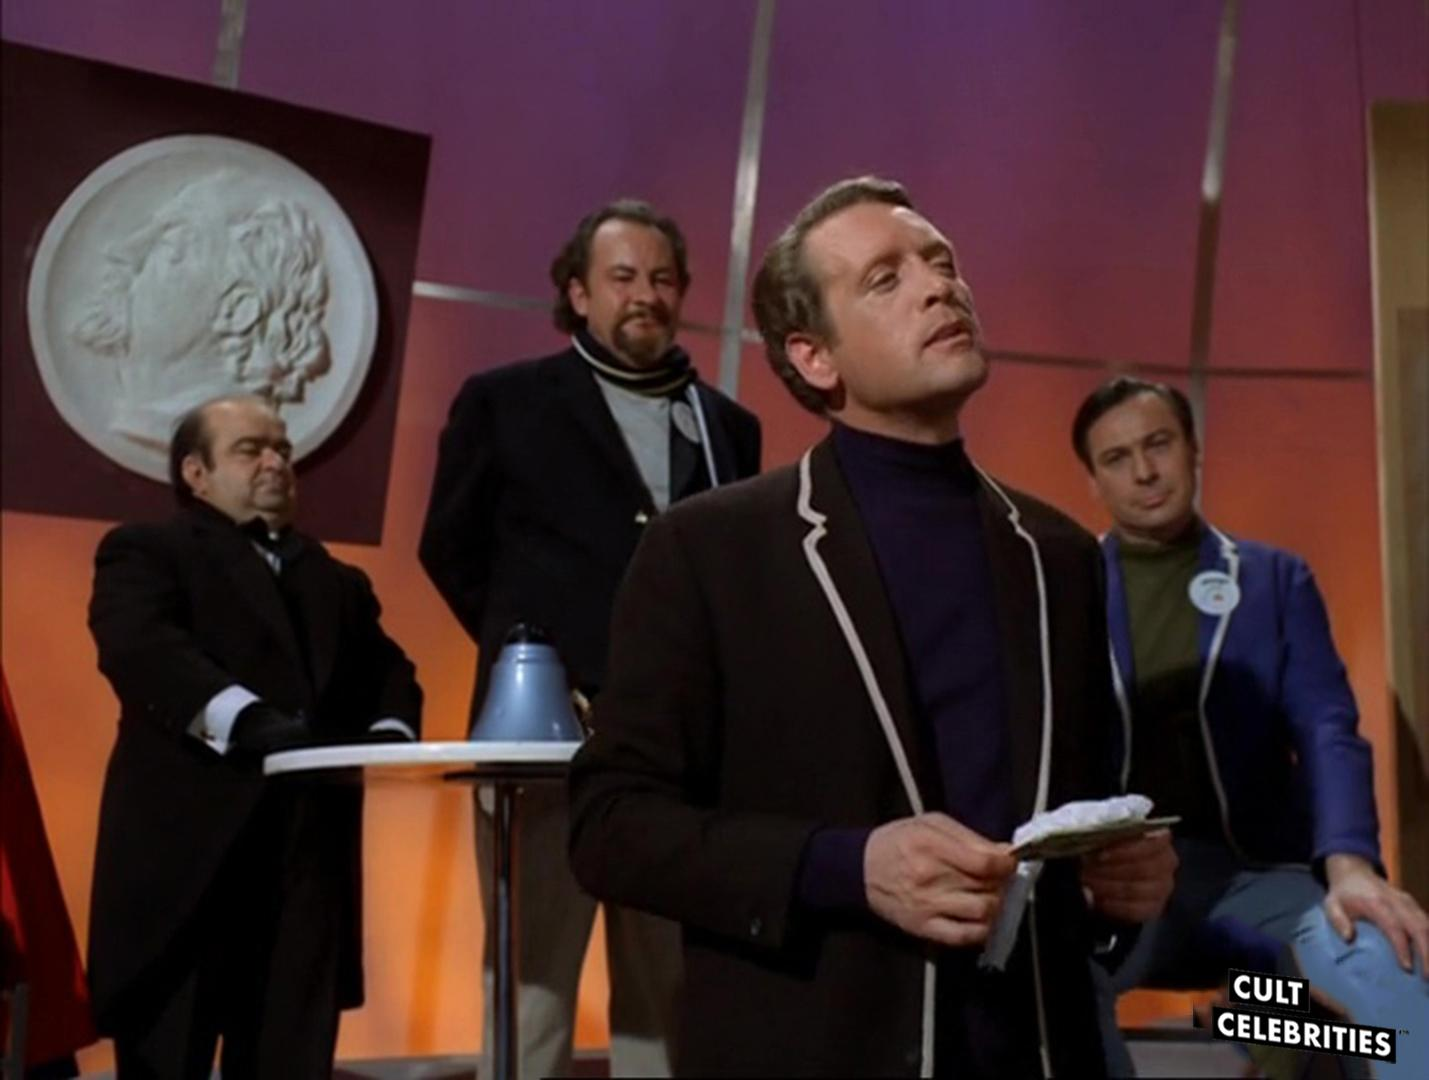 Patrick McGoohan in The Prisoner S01E01 - The Chimes Of Big Ben